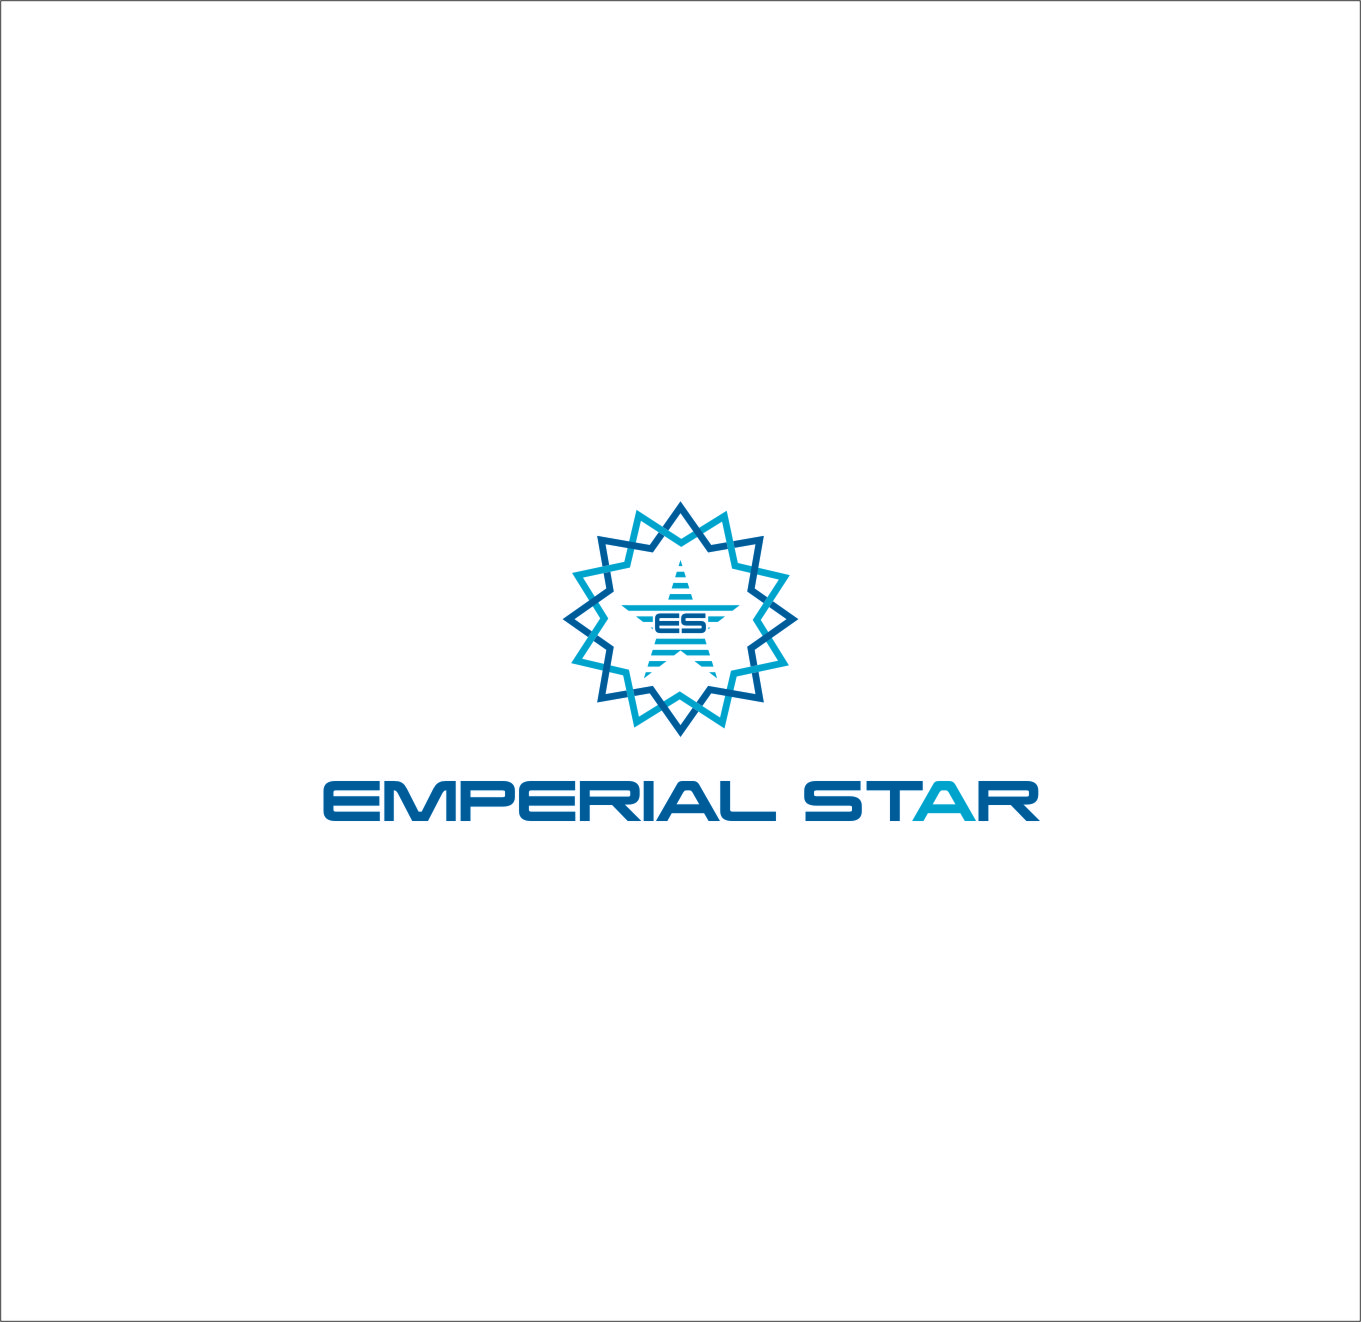 Logo Design by Ngepet_art - Entry No. 16 in the Logo Design Contest Emperial Star Logo Design.